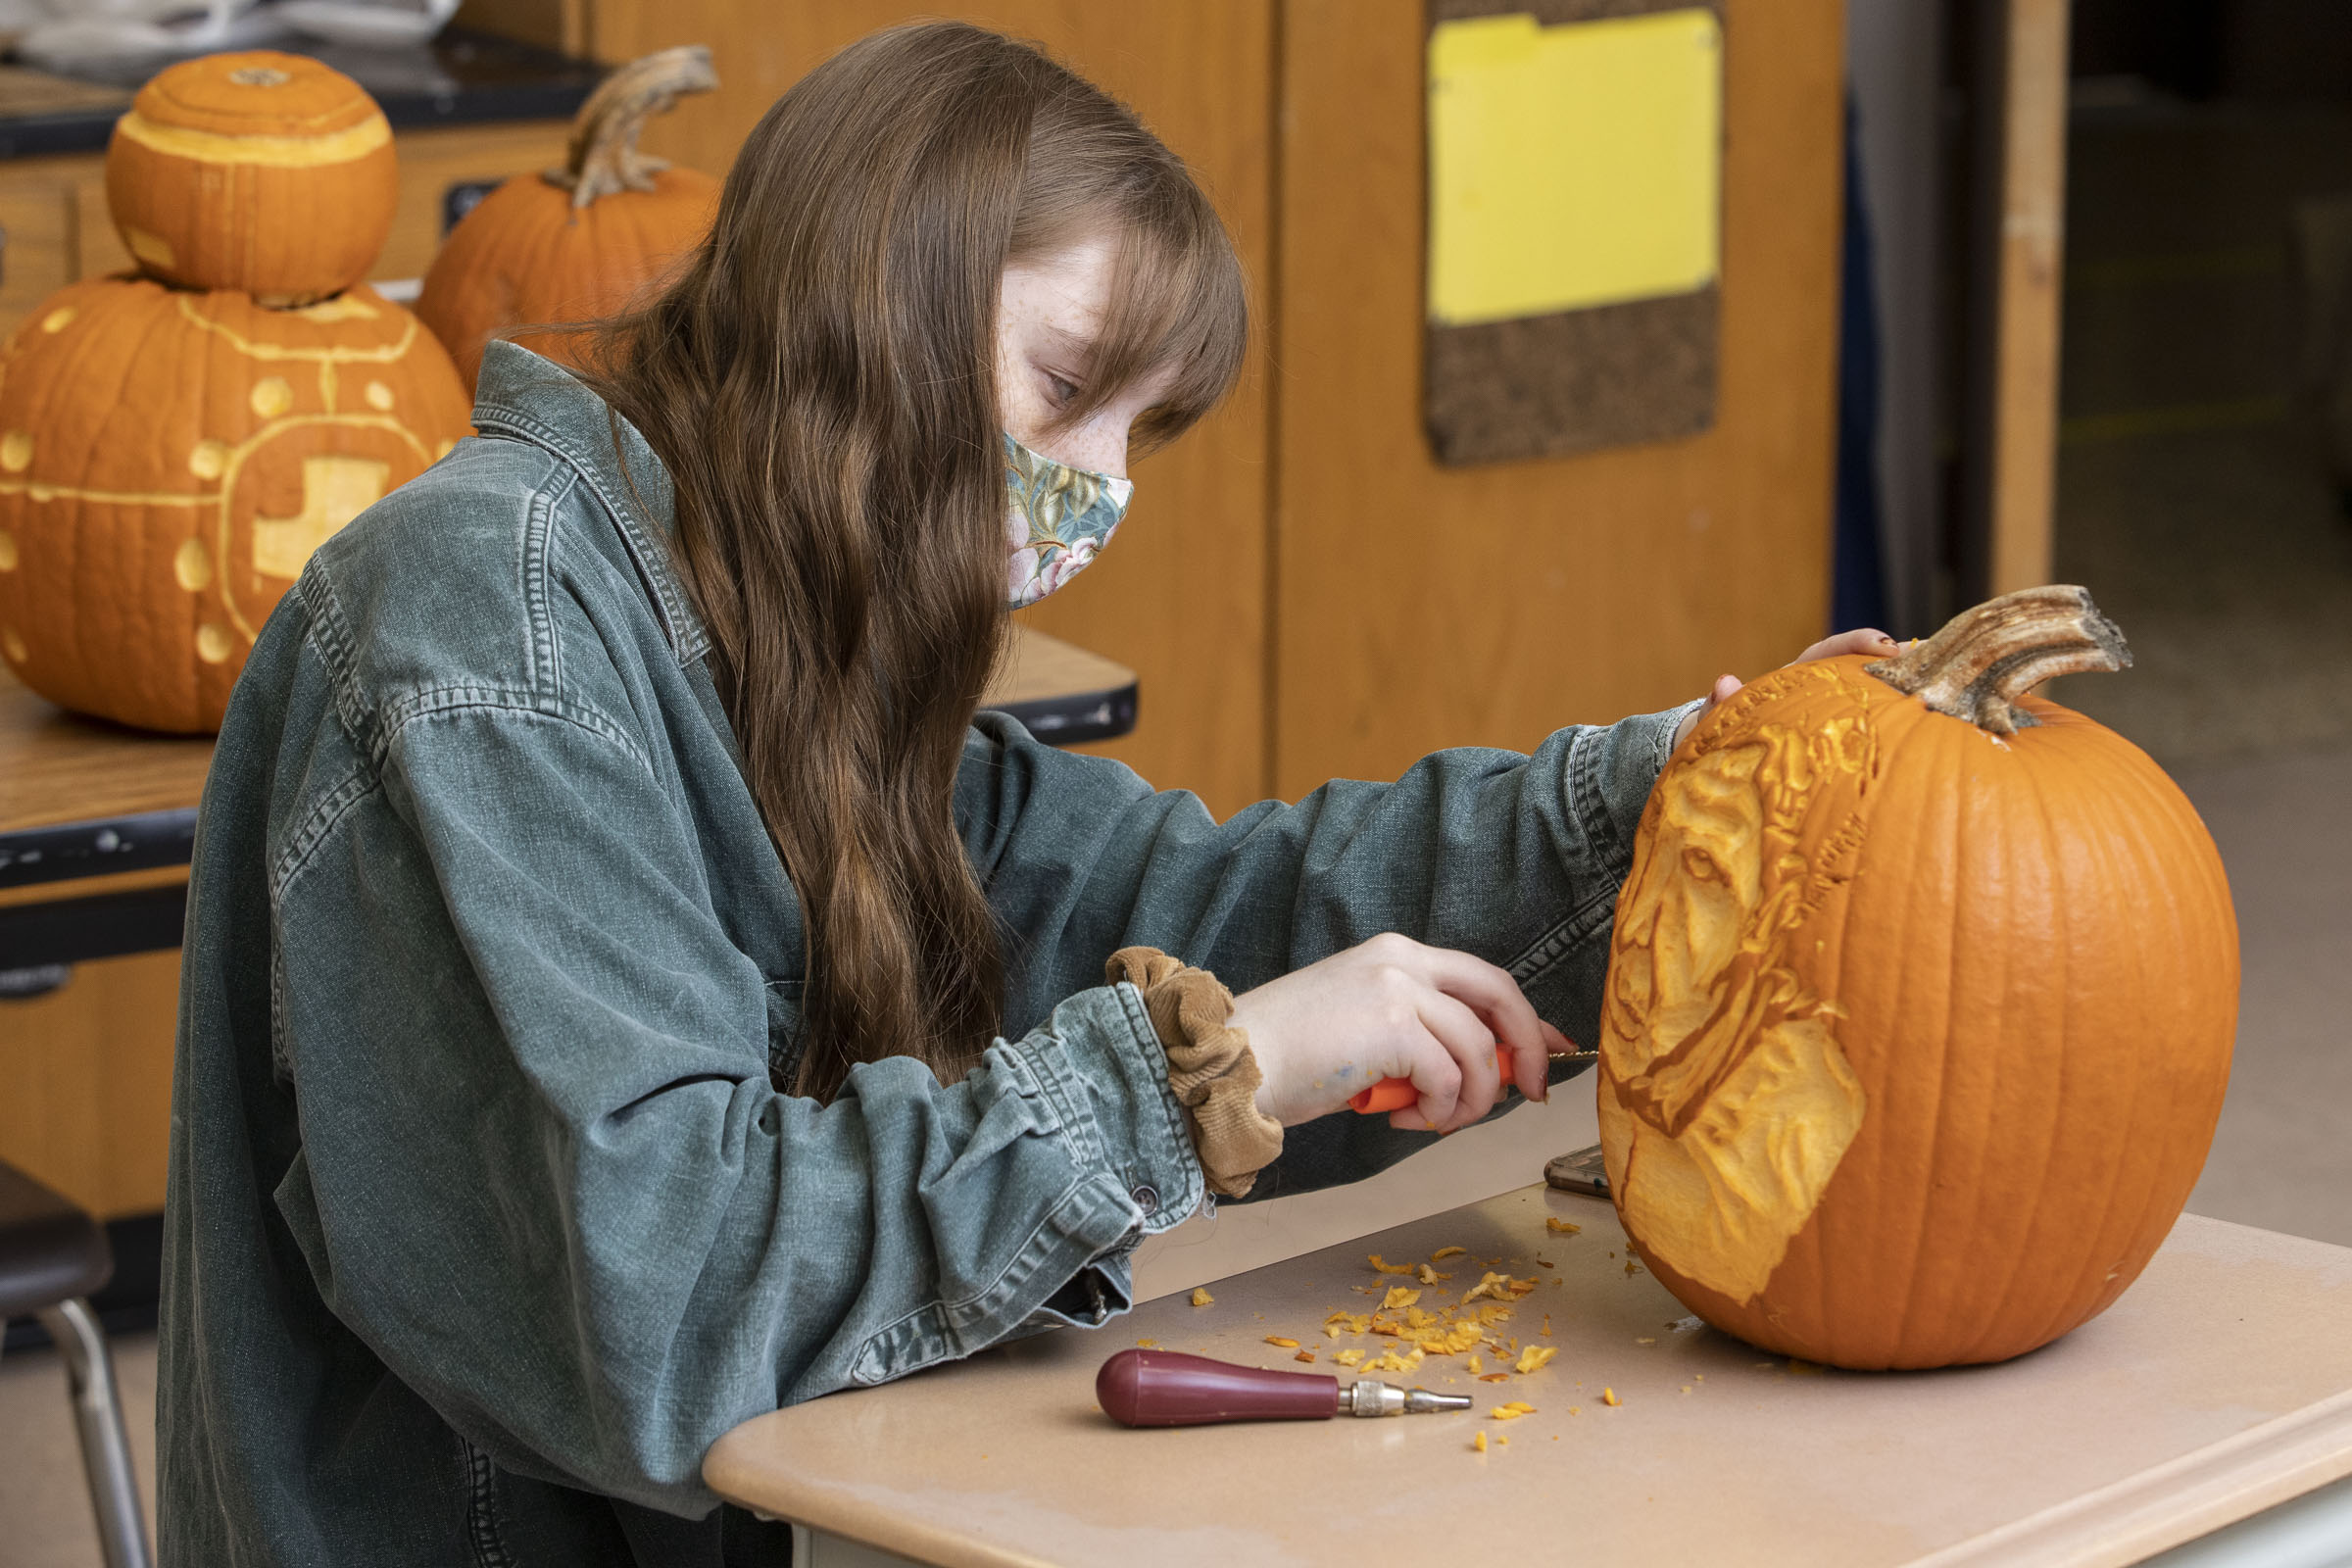 Warwick High School art students carved pumpkins with a Star Wars theme for their entry into the Crystal Springs Resort Jack-O-Lantern Carving Contest. WVHS Digital Photography students photographed the pumpkins for use in the carvers' portfolios.